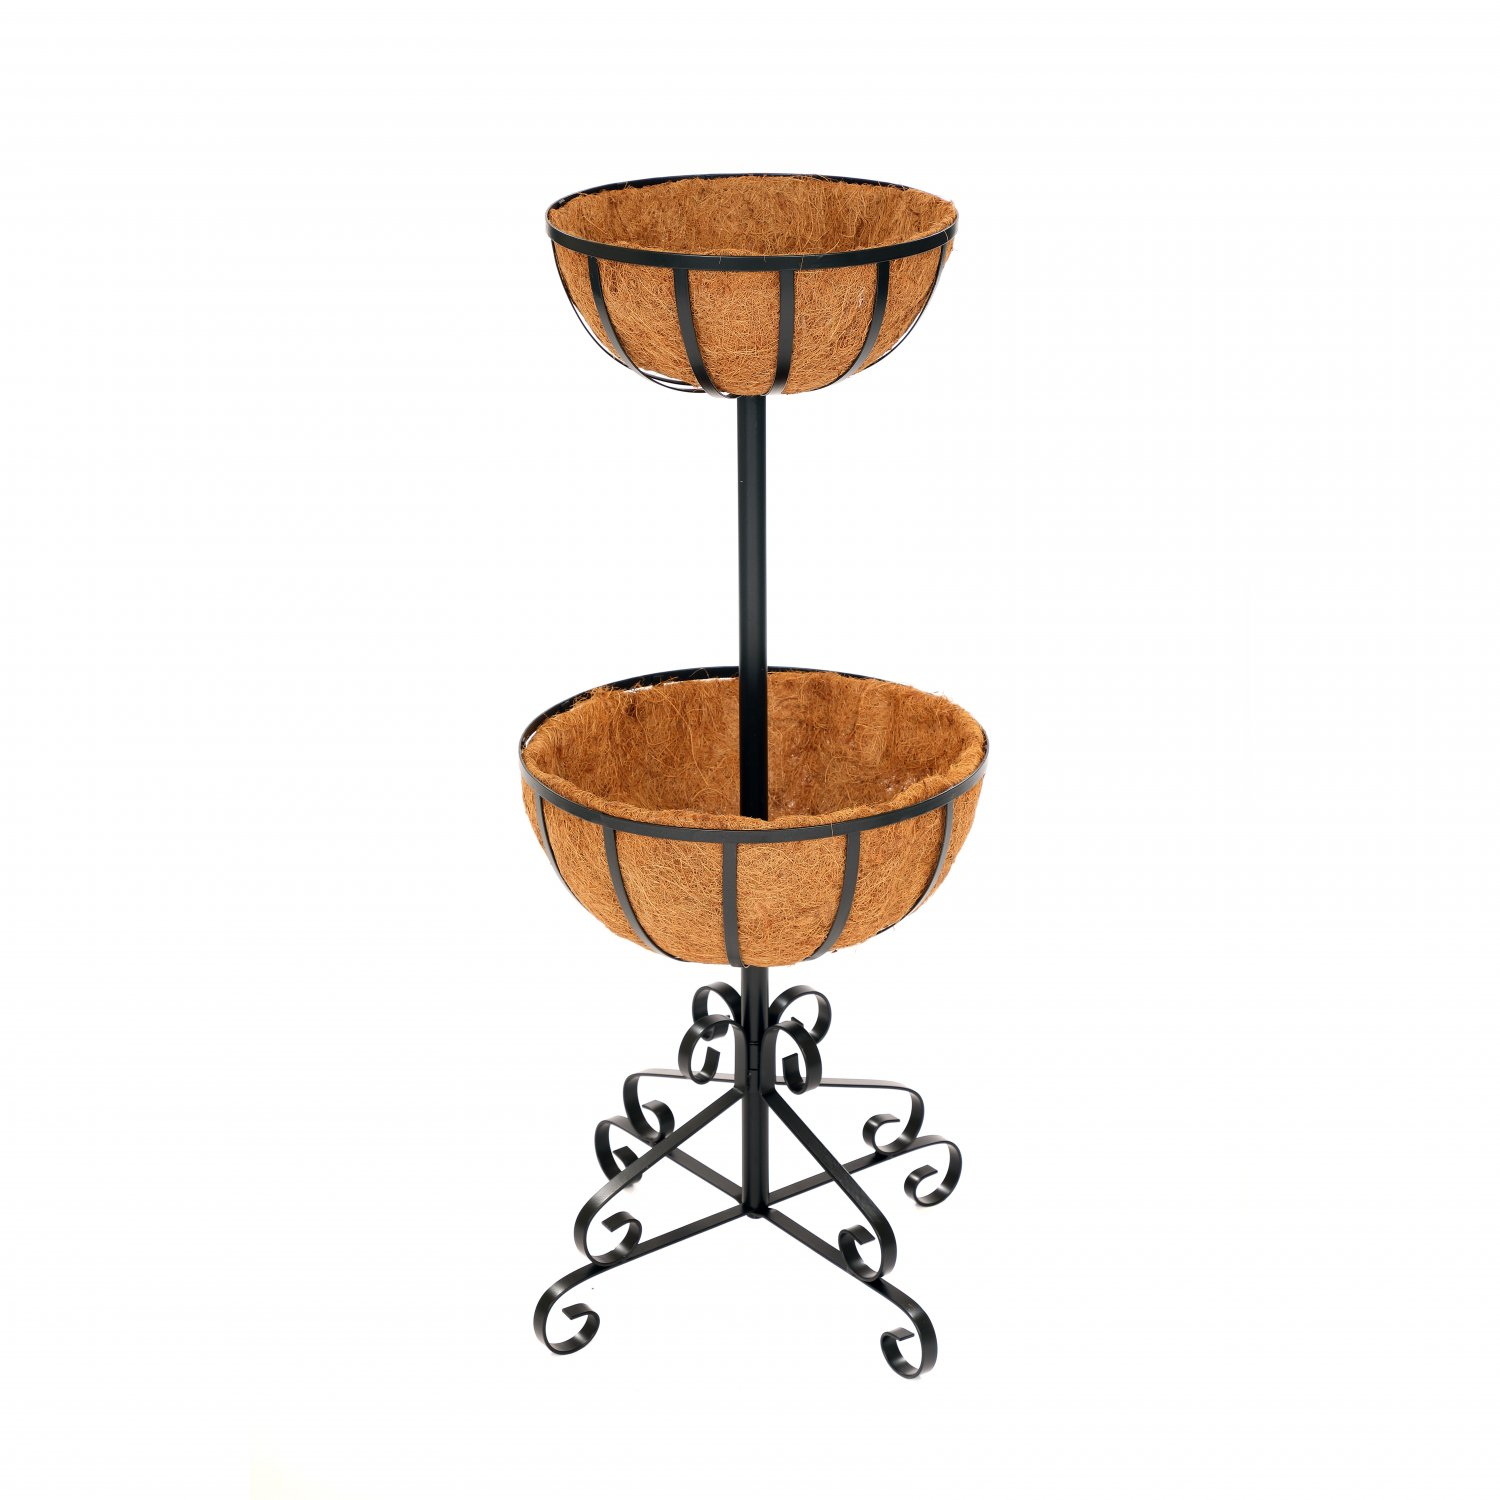 2 Tier Metal Garden Flower Fountain Plant Display Stand